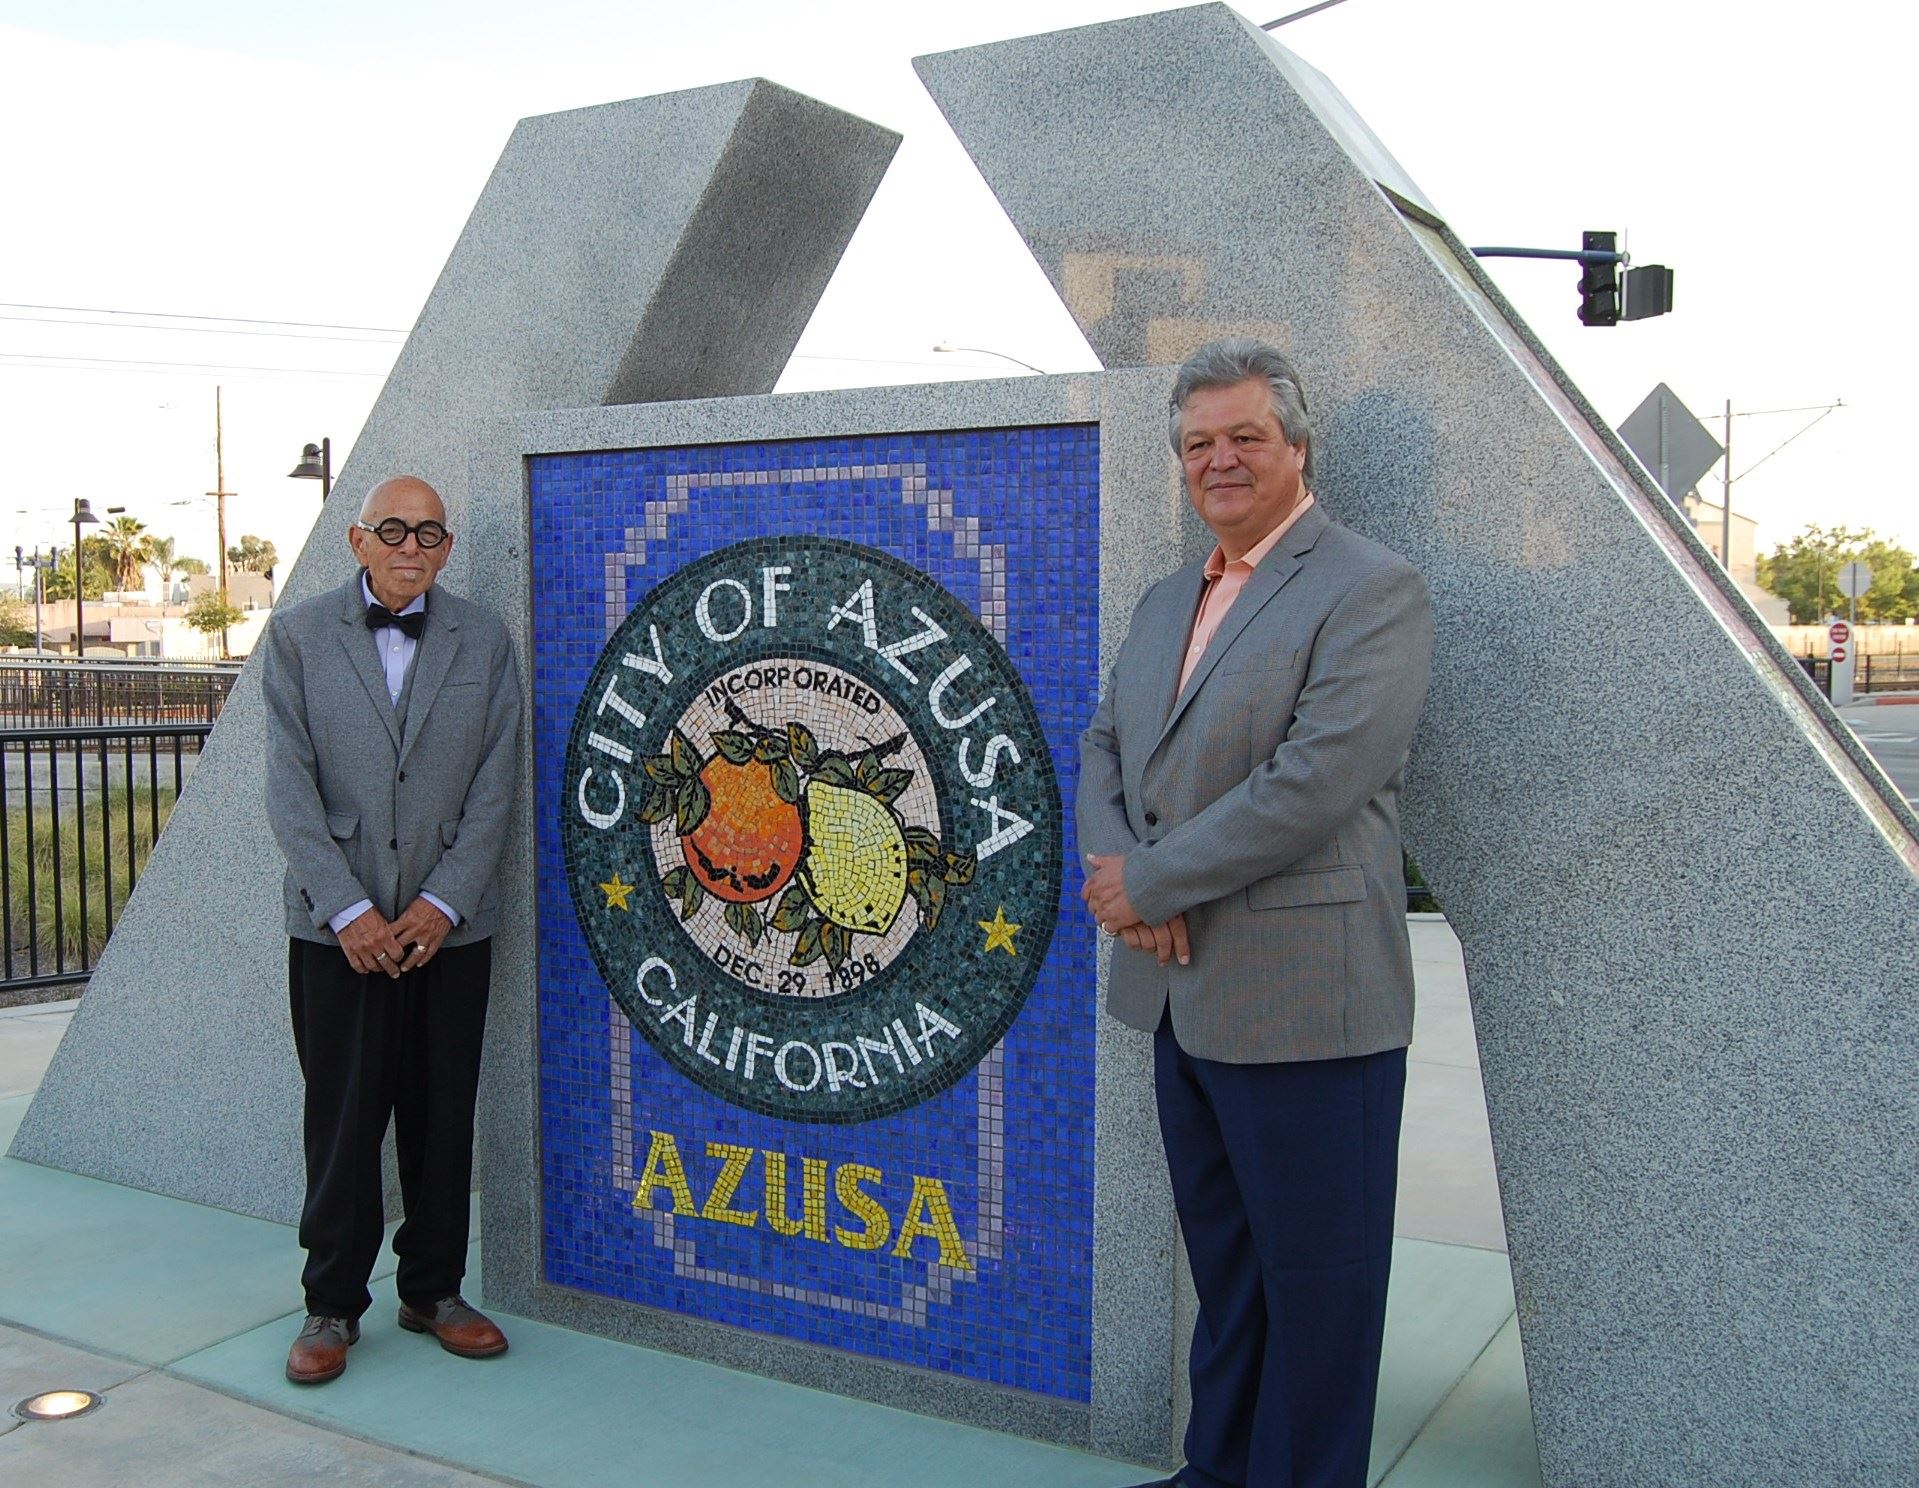 Azusa A Artist with Mayor Rocha